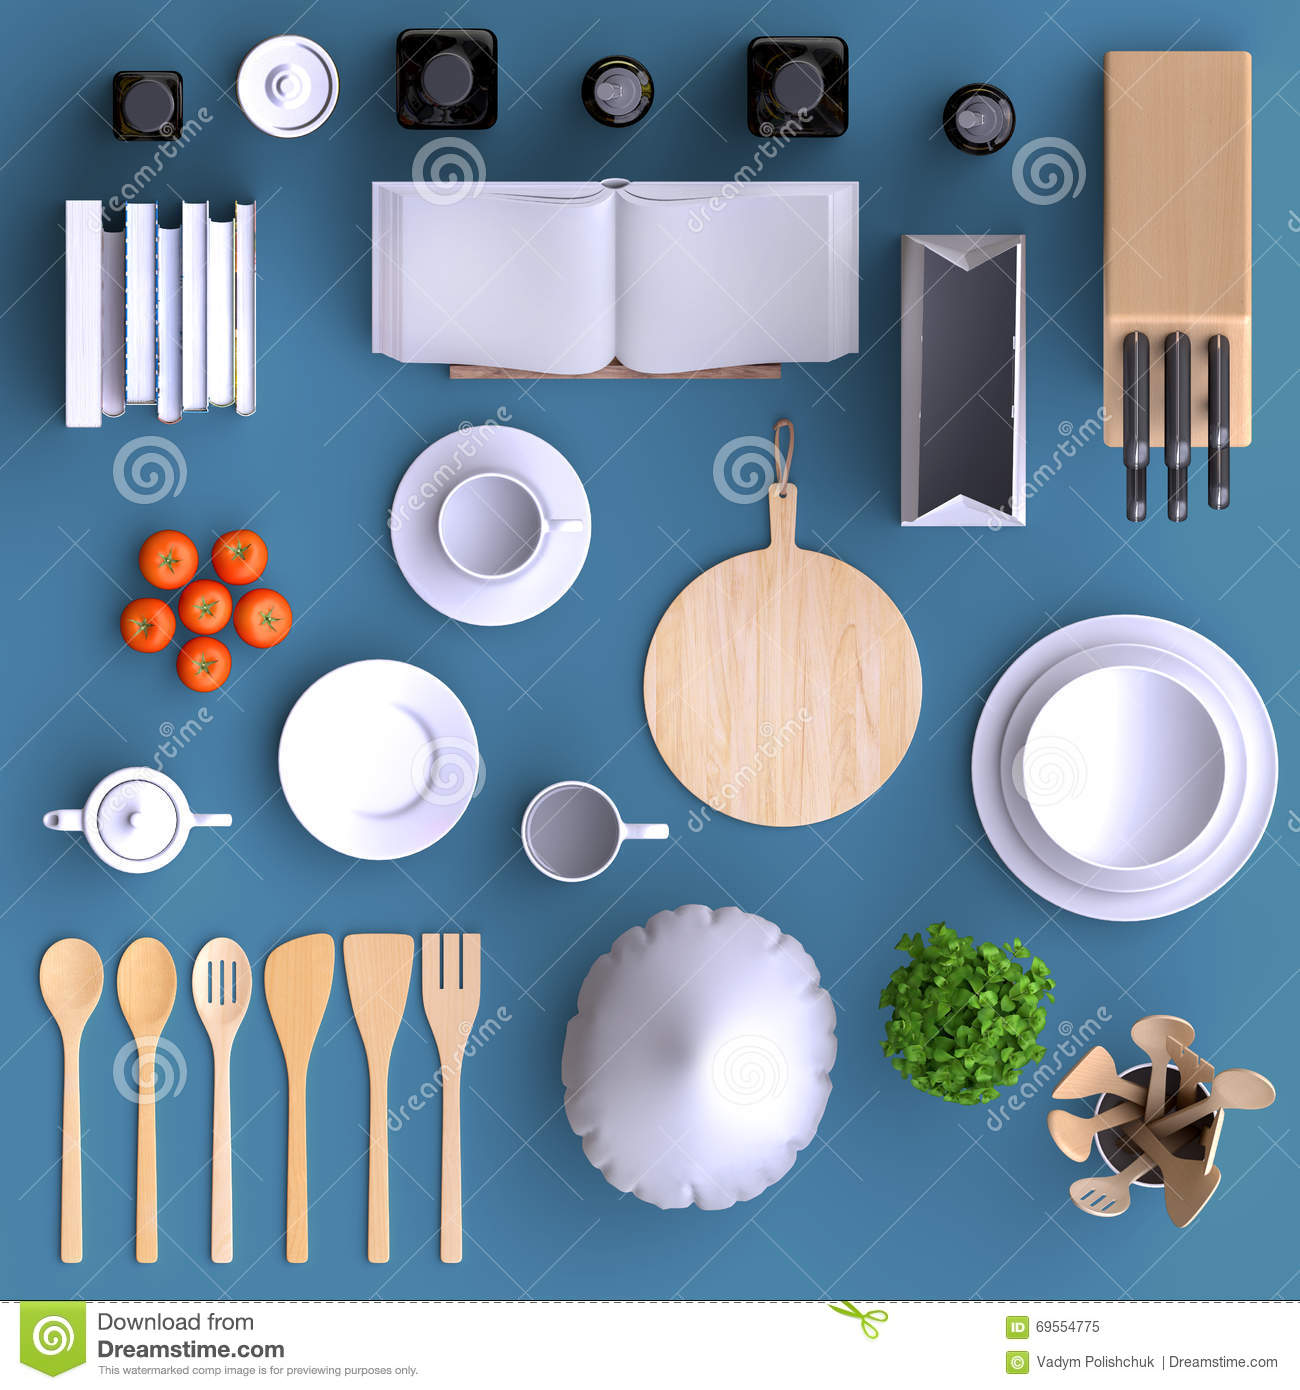 Branding Mock Up Kitchen With Table And Kitchenware Blank Template On Color Background For Home